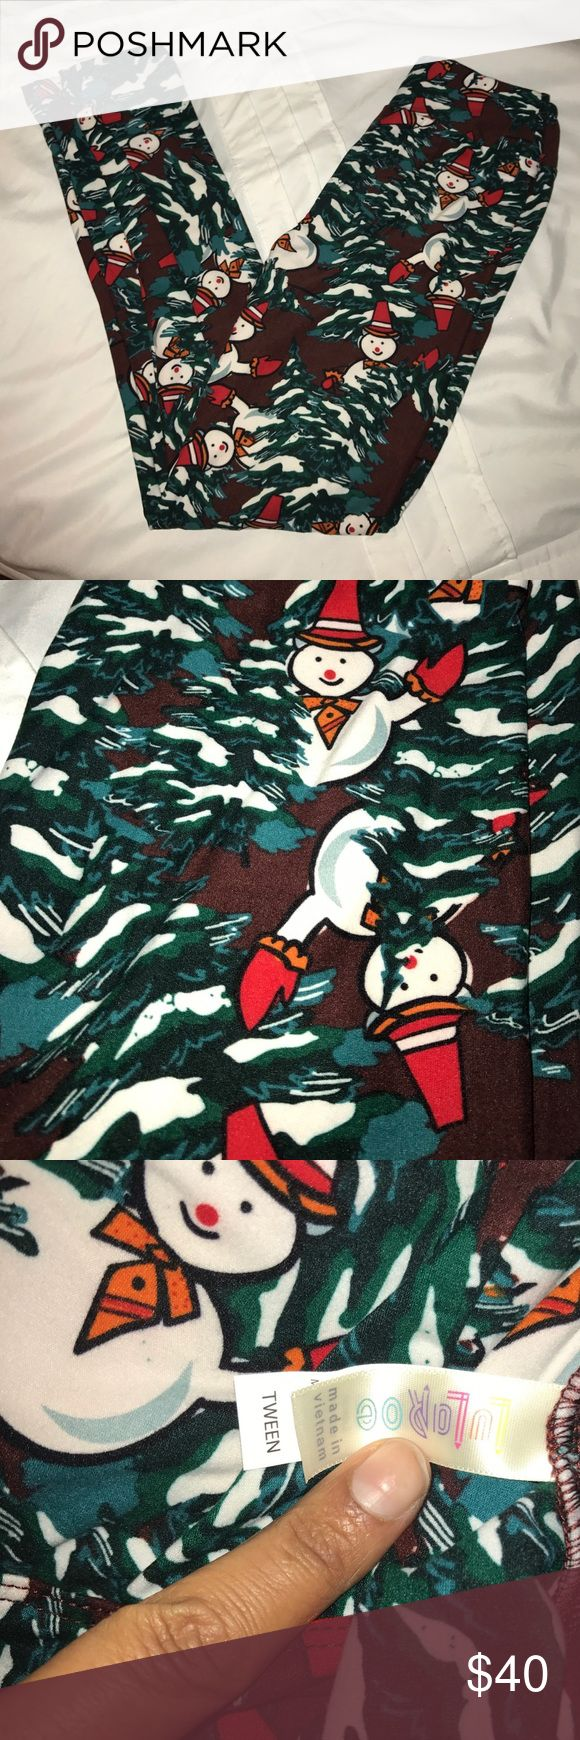 Lularoe Holiday Leggings!!! These TWEEN size ⛄️️snowman ⛄️ leggings are adorable Never Worn New ⛄️️ leggings LuLaRoe Pants Leggings